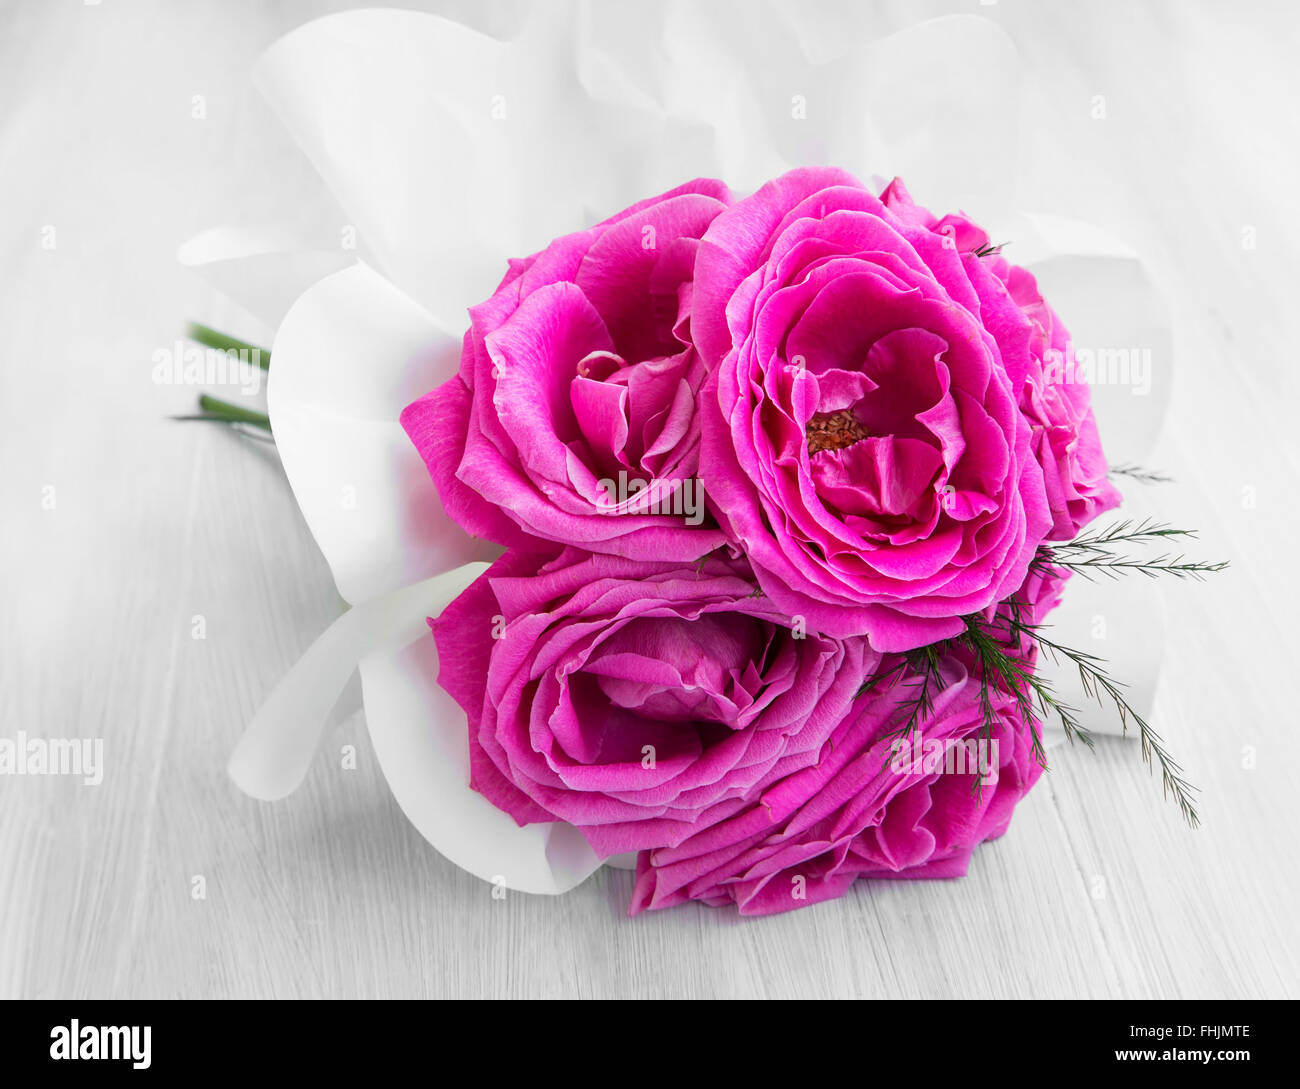 Delicate spring bouquet of pink roses on white painted wood - Stock Image